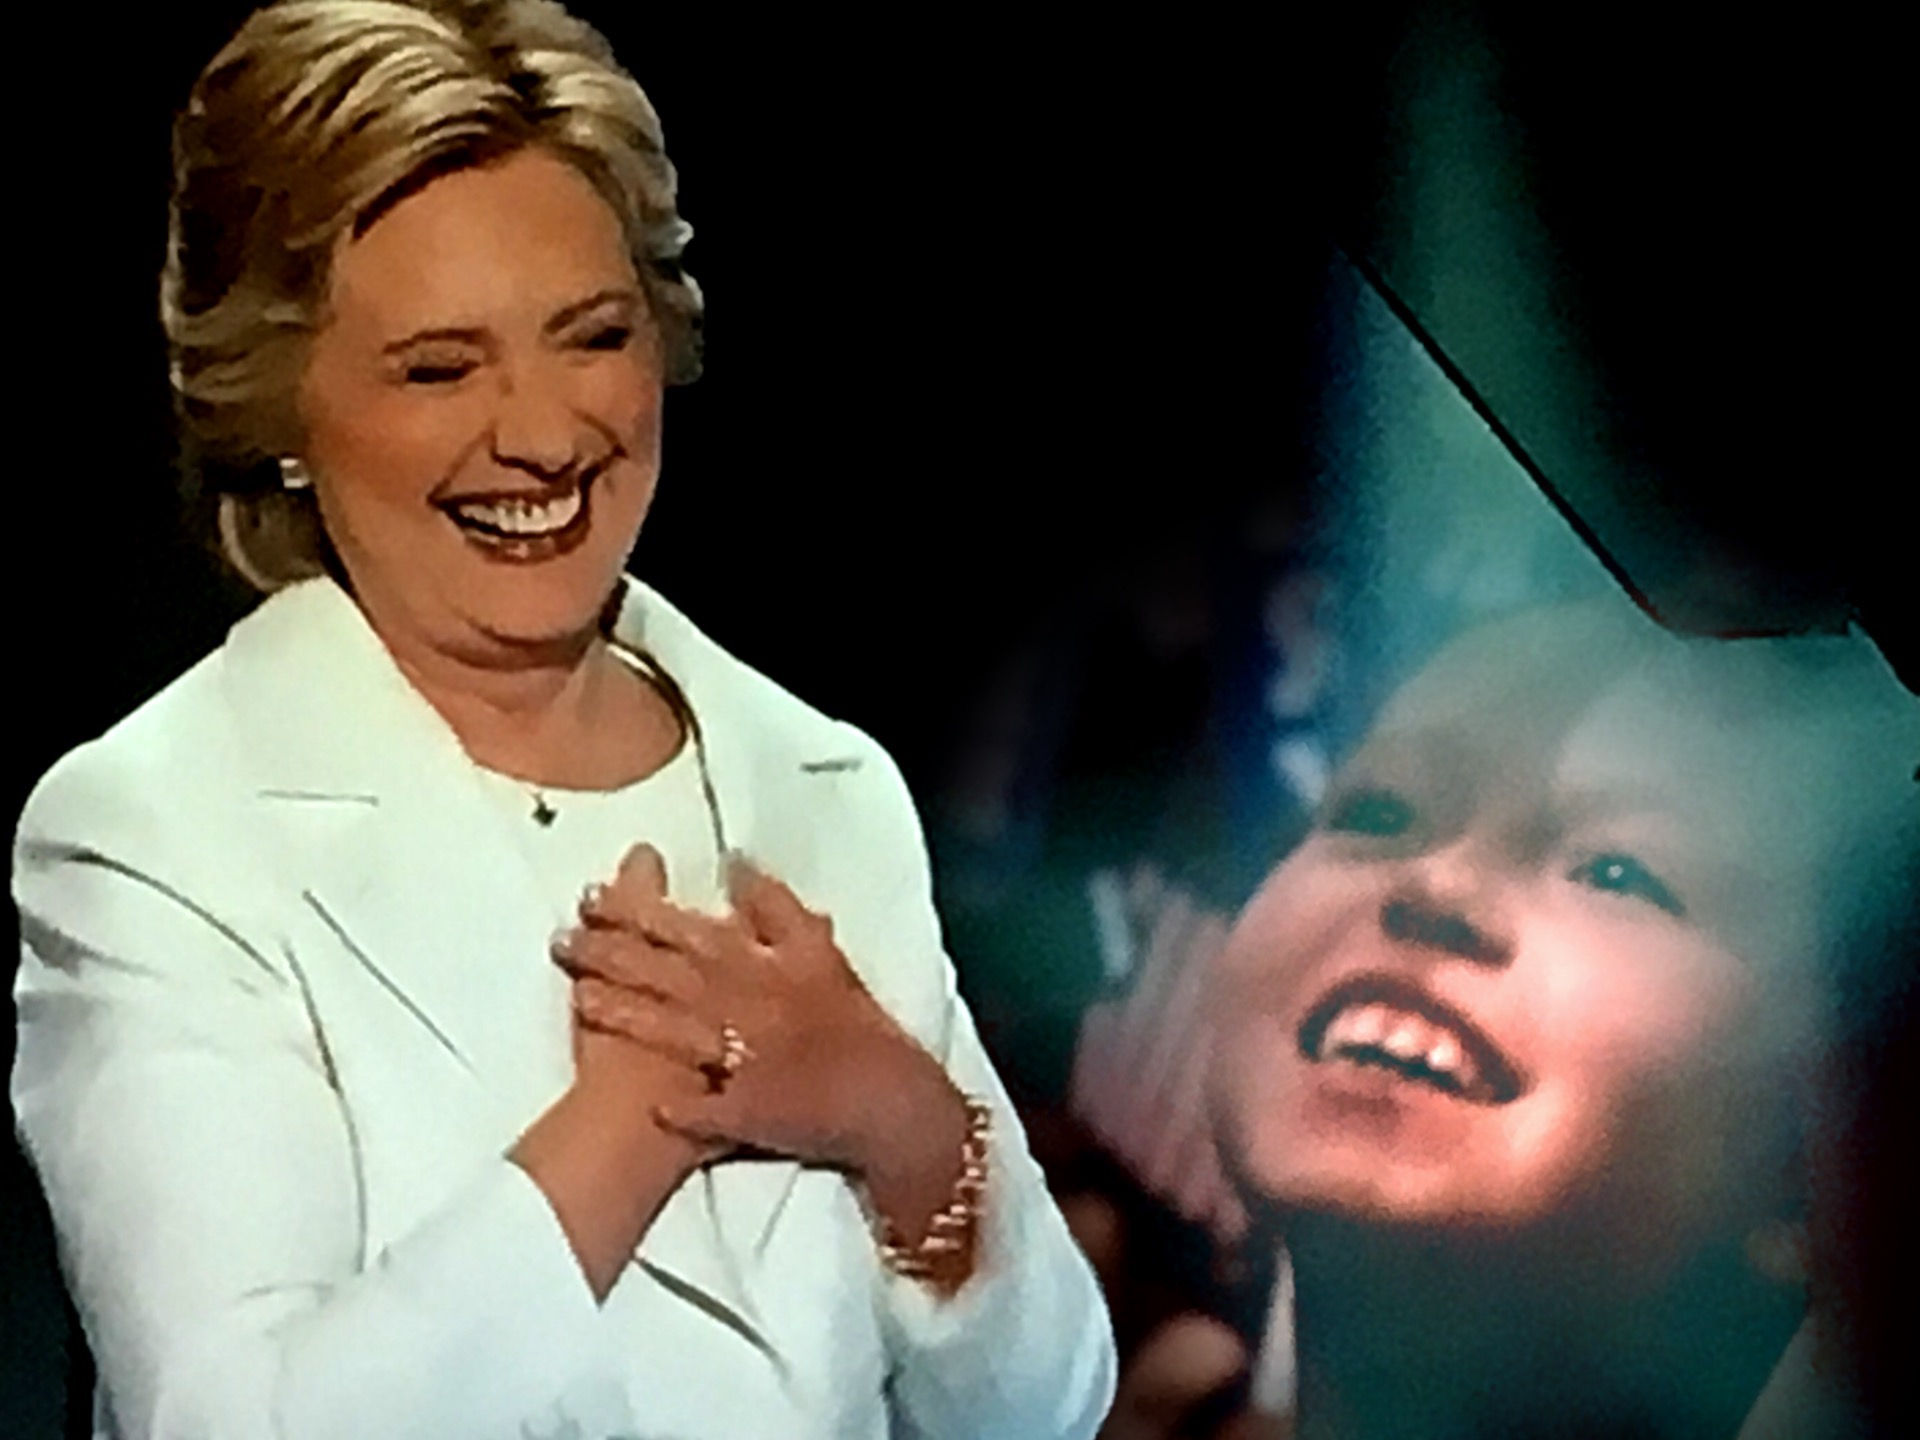 A young girl in the audience watches as Hillary Clinton formally accepts the Democratic Party's nomination for president. (Composite image by Biz Herman/GroundTruth)